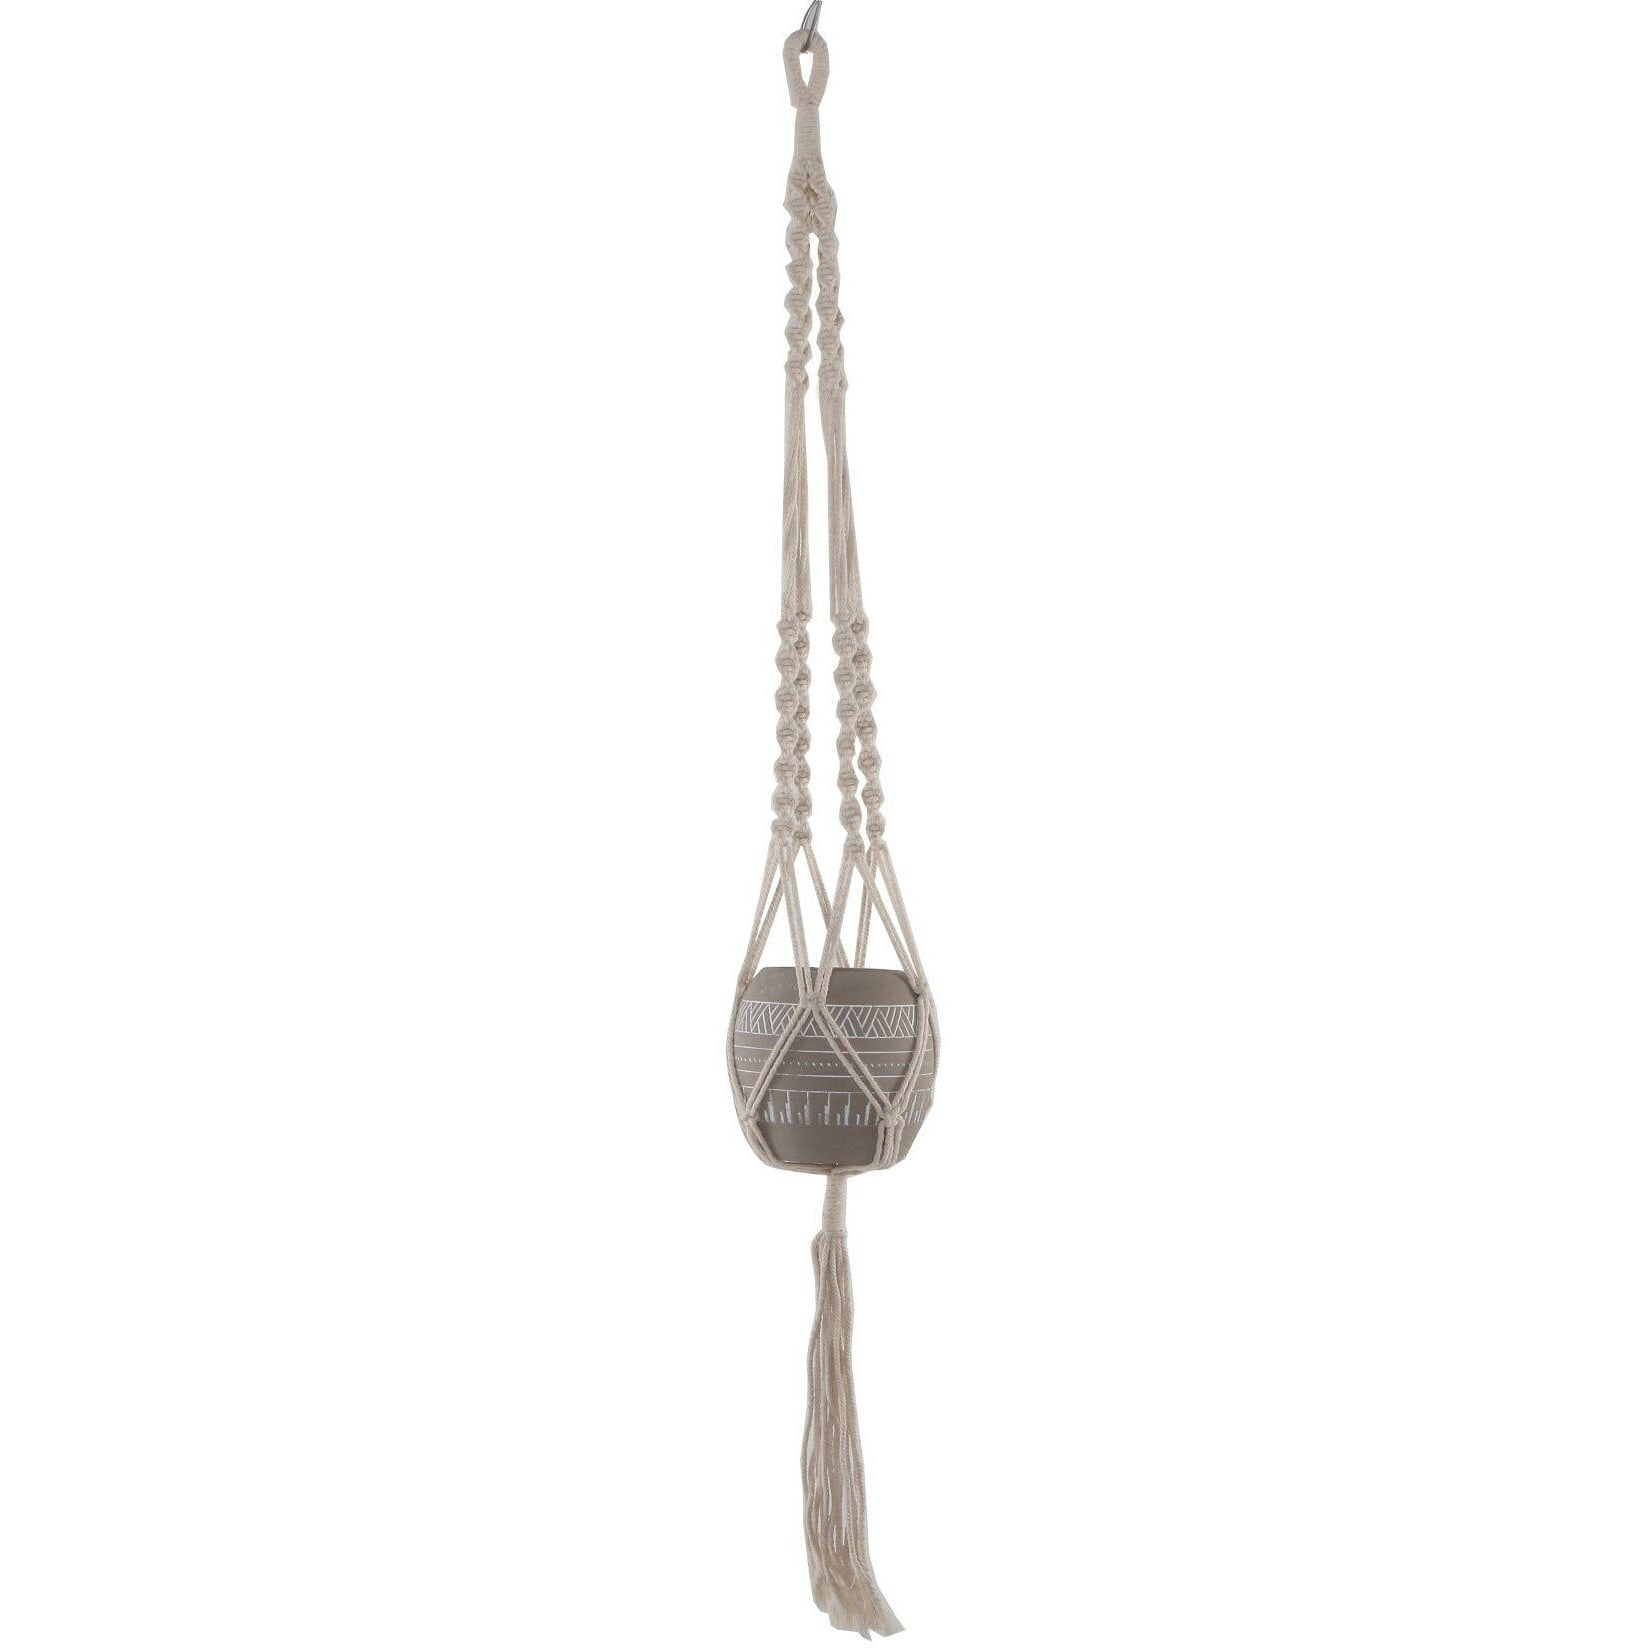 "41"" Hanging Macrame With Aztec Ceramic Pot"